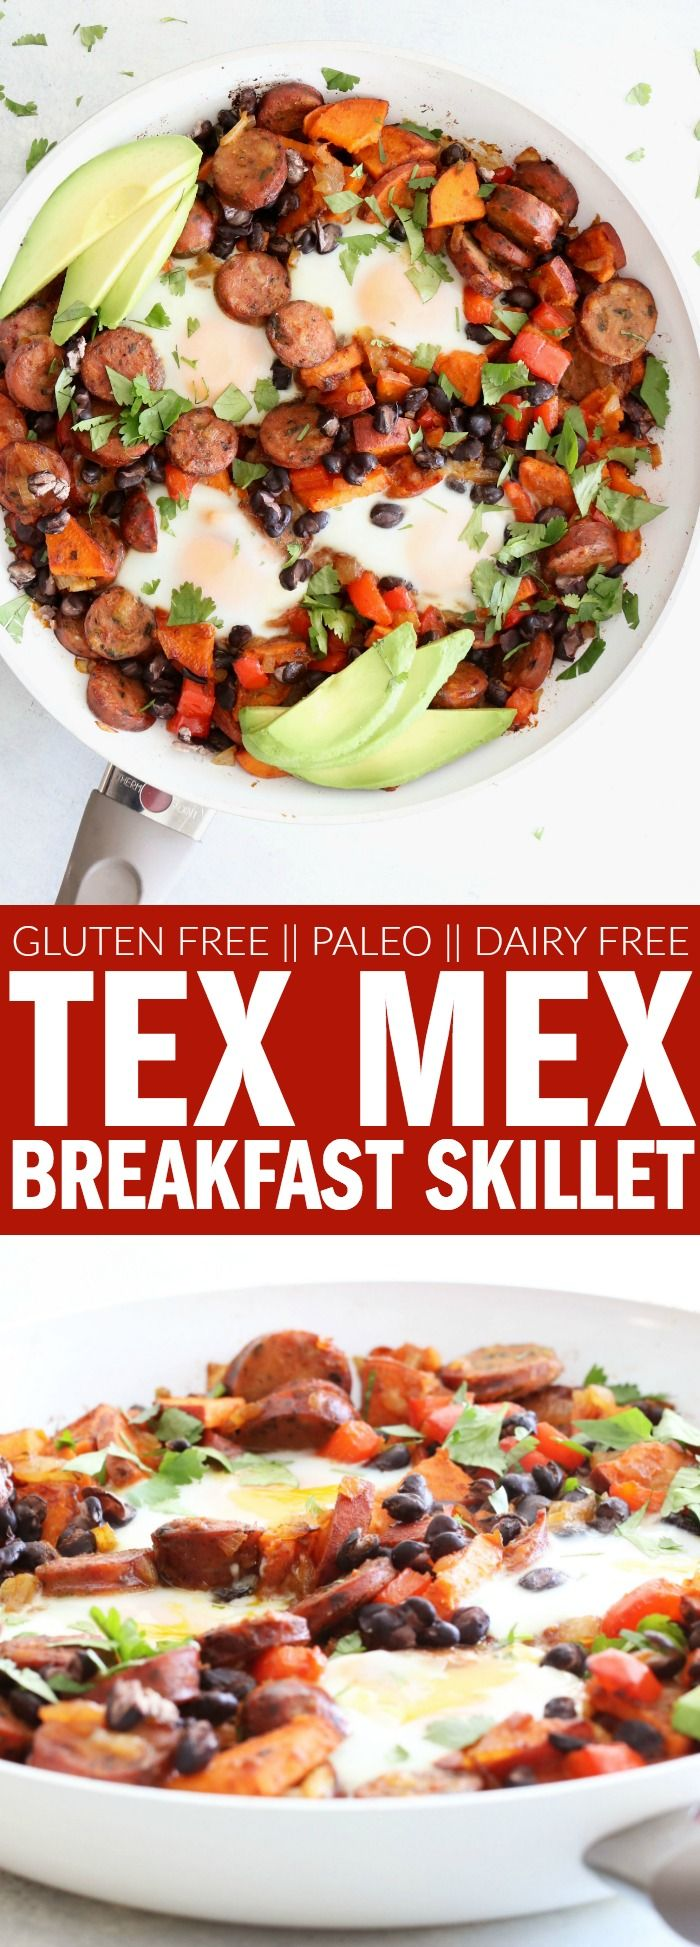 Tex Mex Breakfast Skillet | gluten free | vegan | diary free | recipes | recipe | low carb | healthy | fresh | clean eating | healthyish | low ingredient | easy | the easiest | quick | simple | breakfast | brunch | party | menu | skillet | for company | one